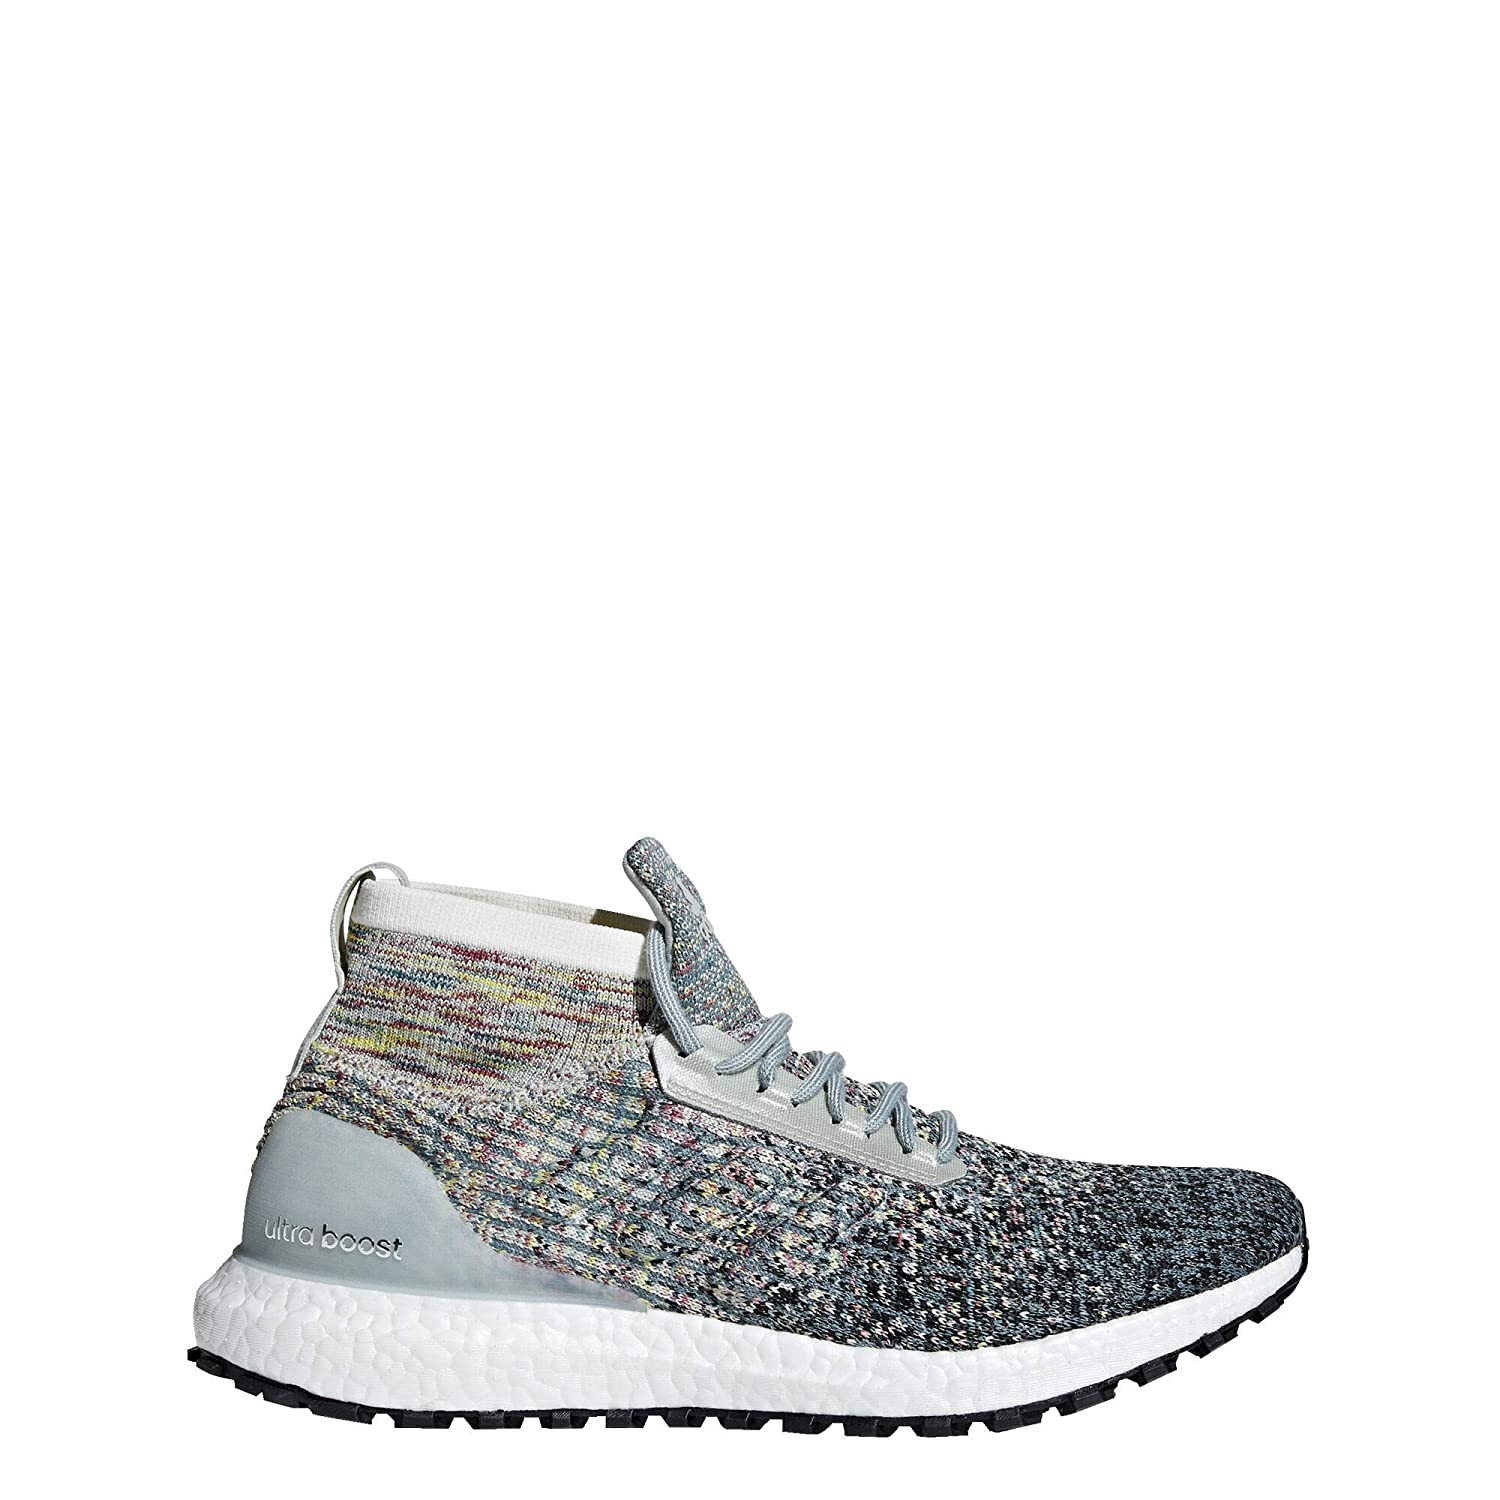 adidas Men s Ultraboost All Terrain Ltd Running Shoe